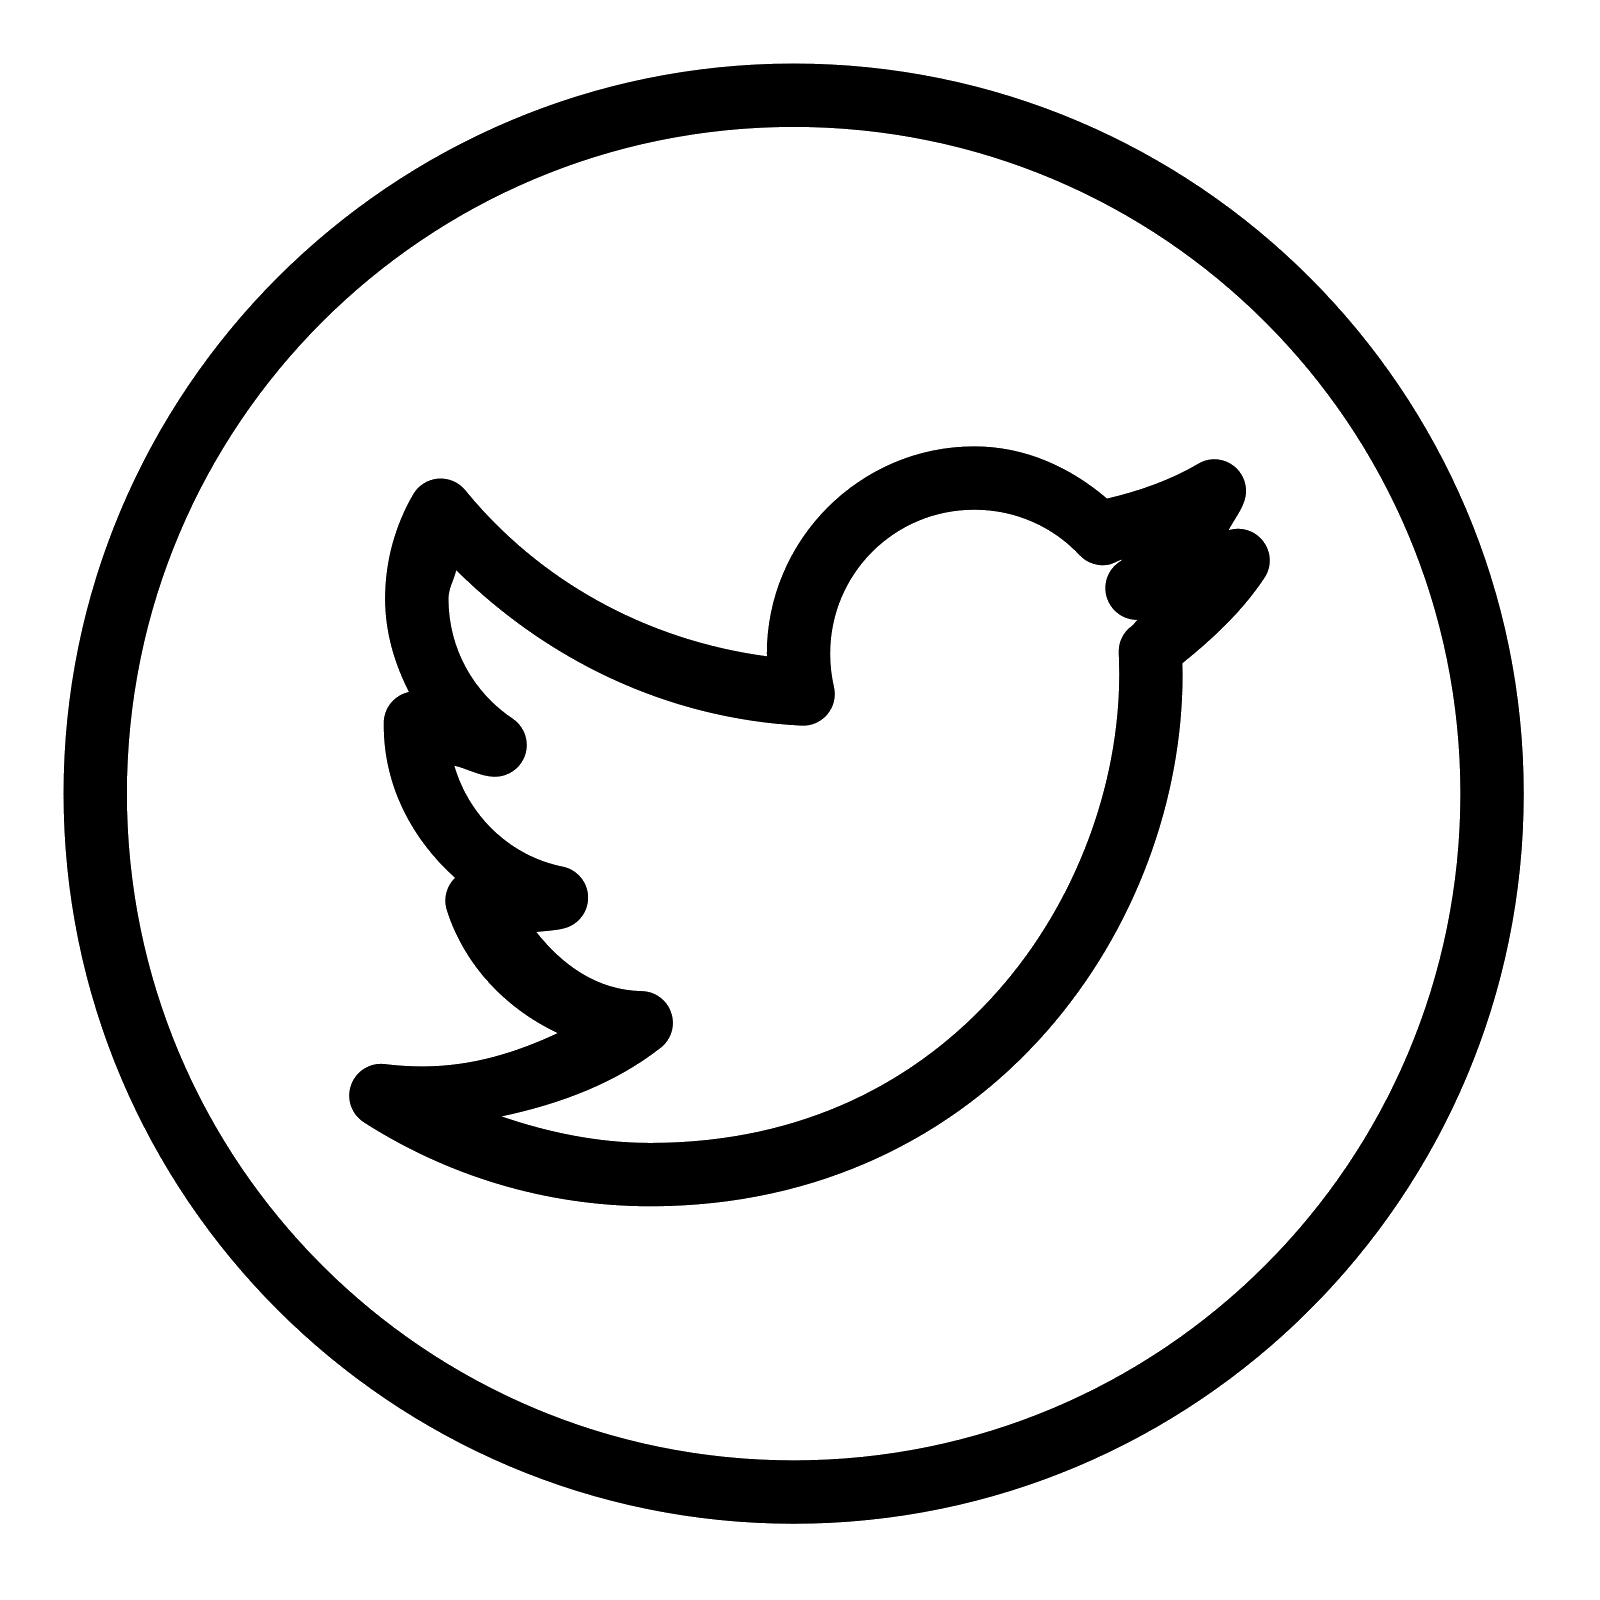 Black And White Twitter Logo Png Picture 439519 Black And White